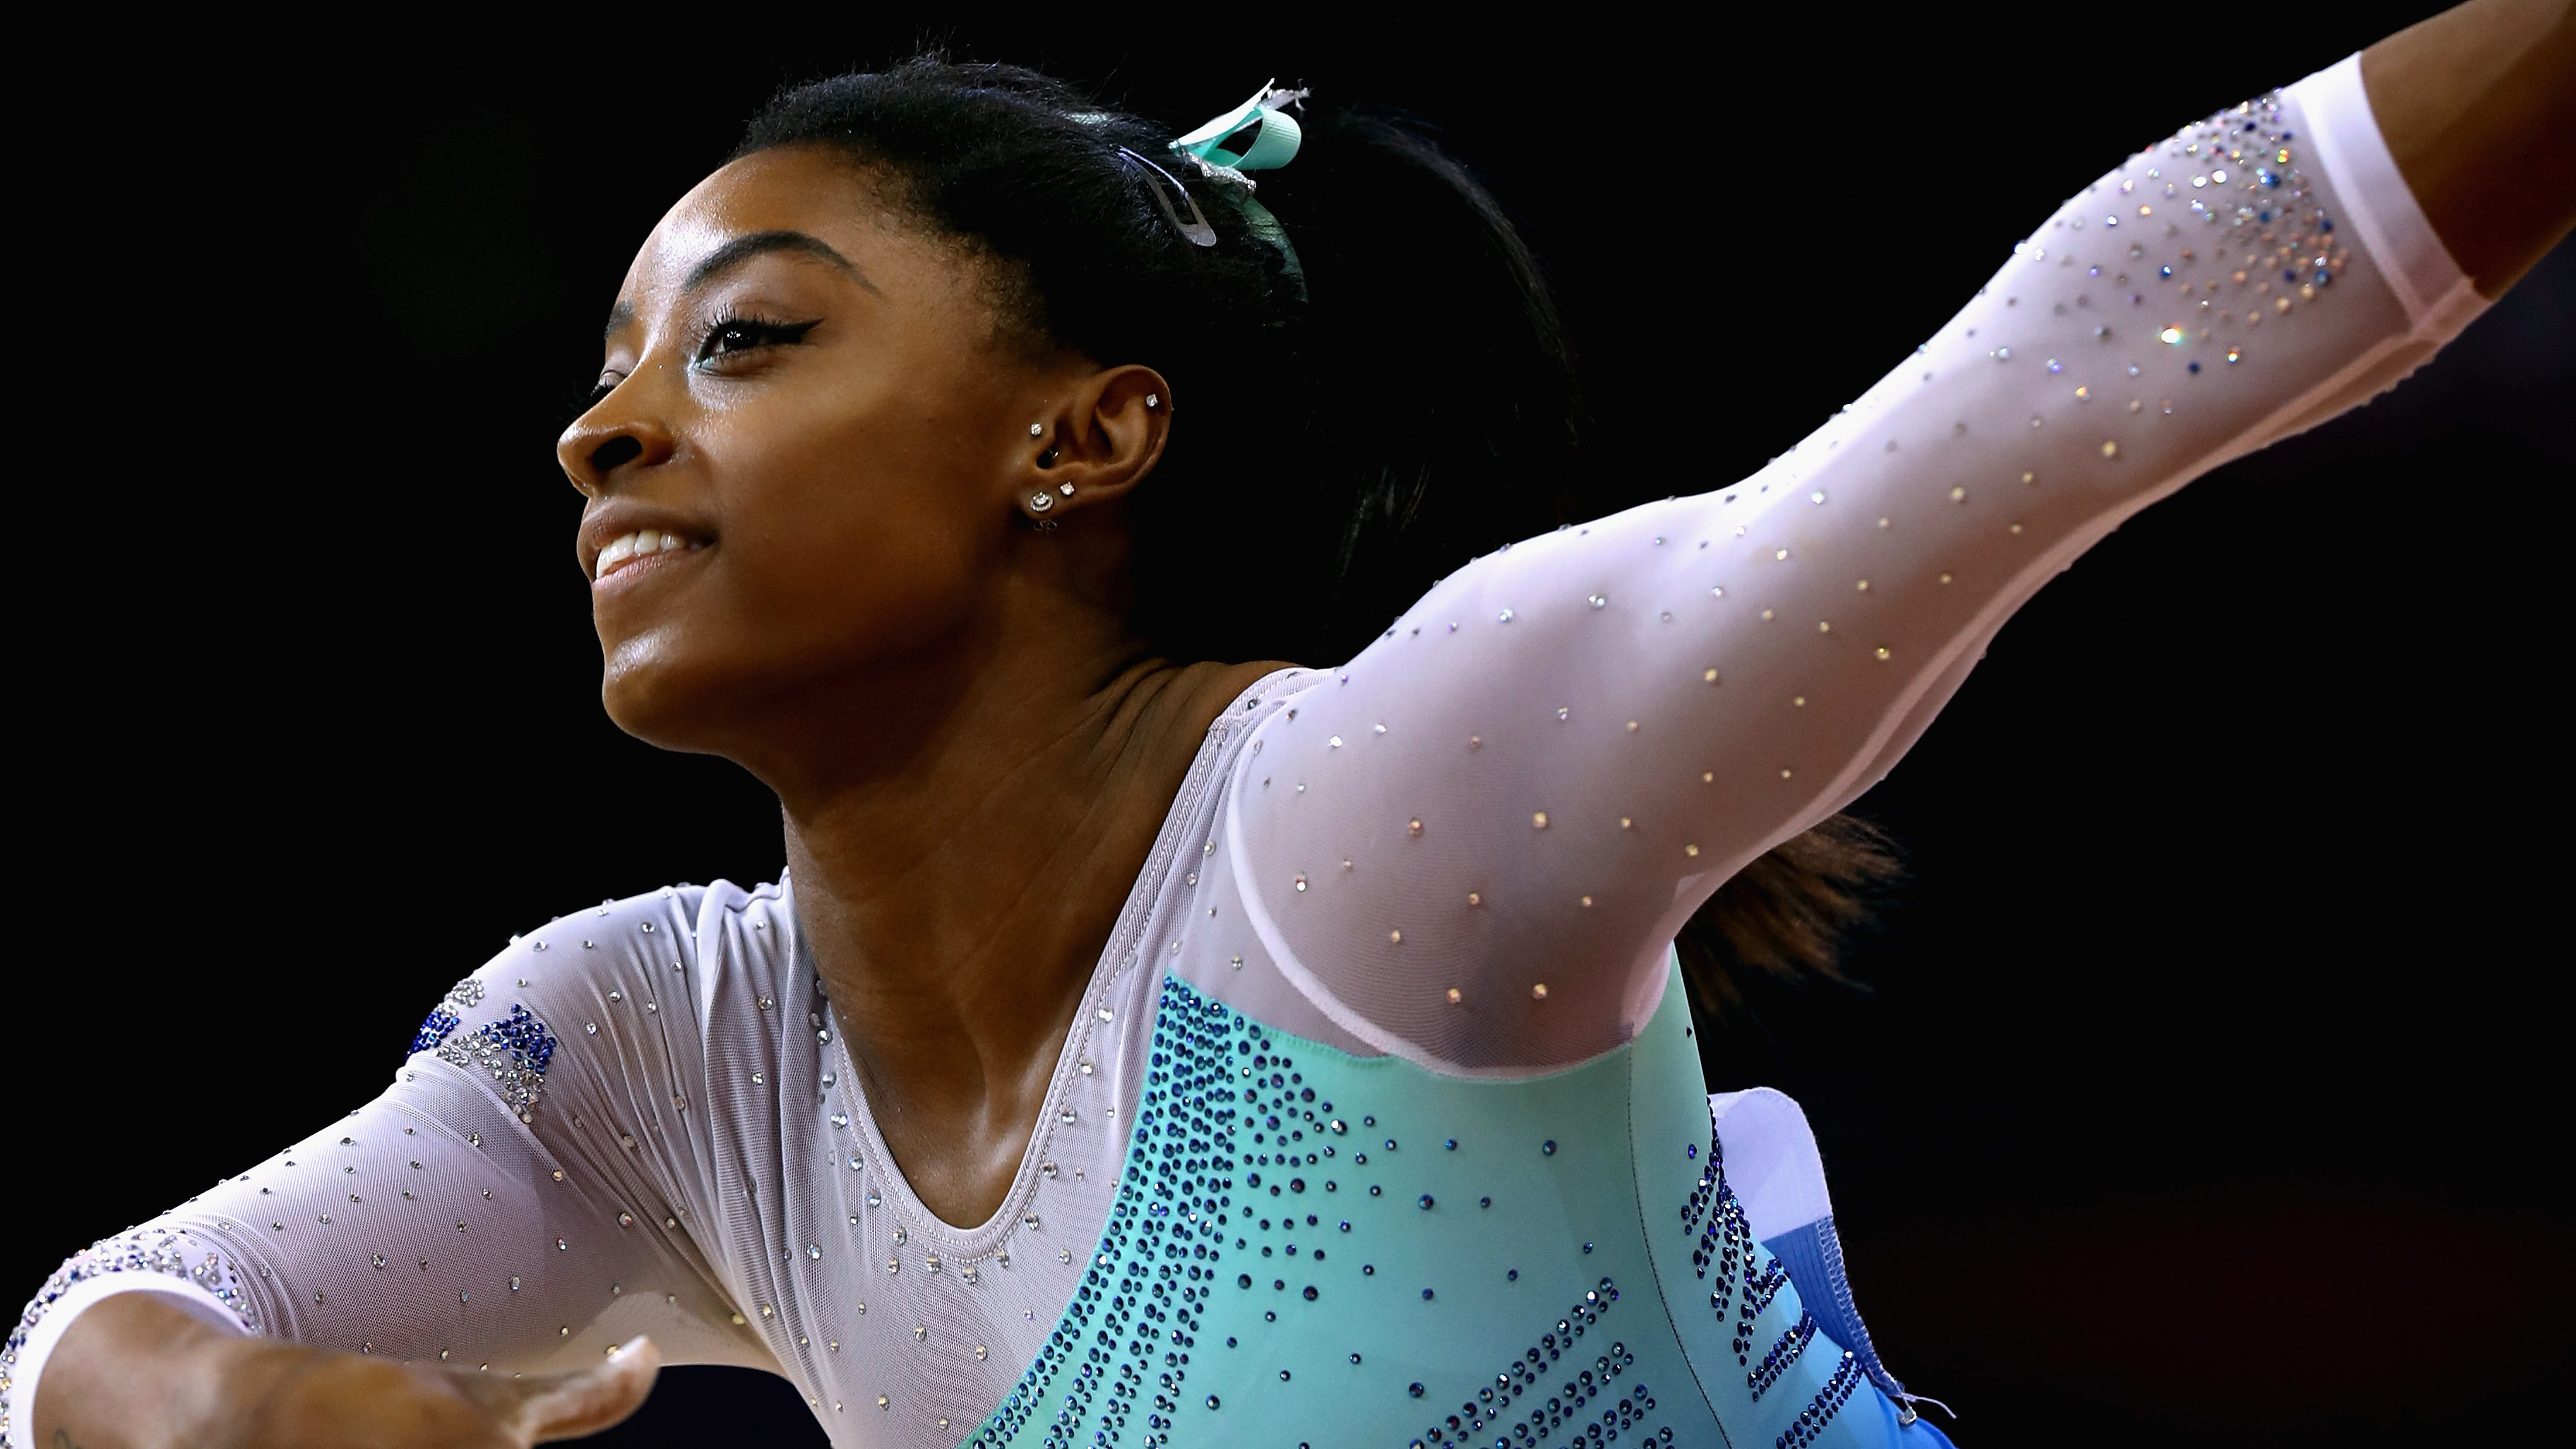 Highlights: Simone Biles all-around routine at DTB Pokal World Cup